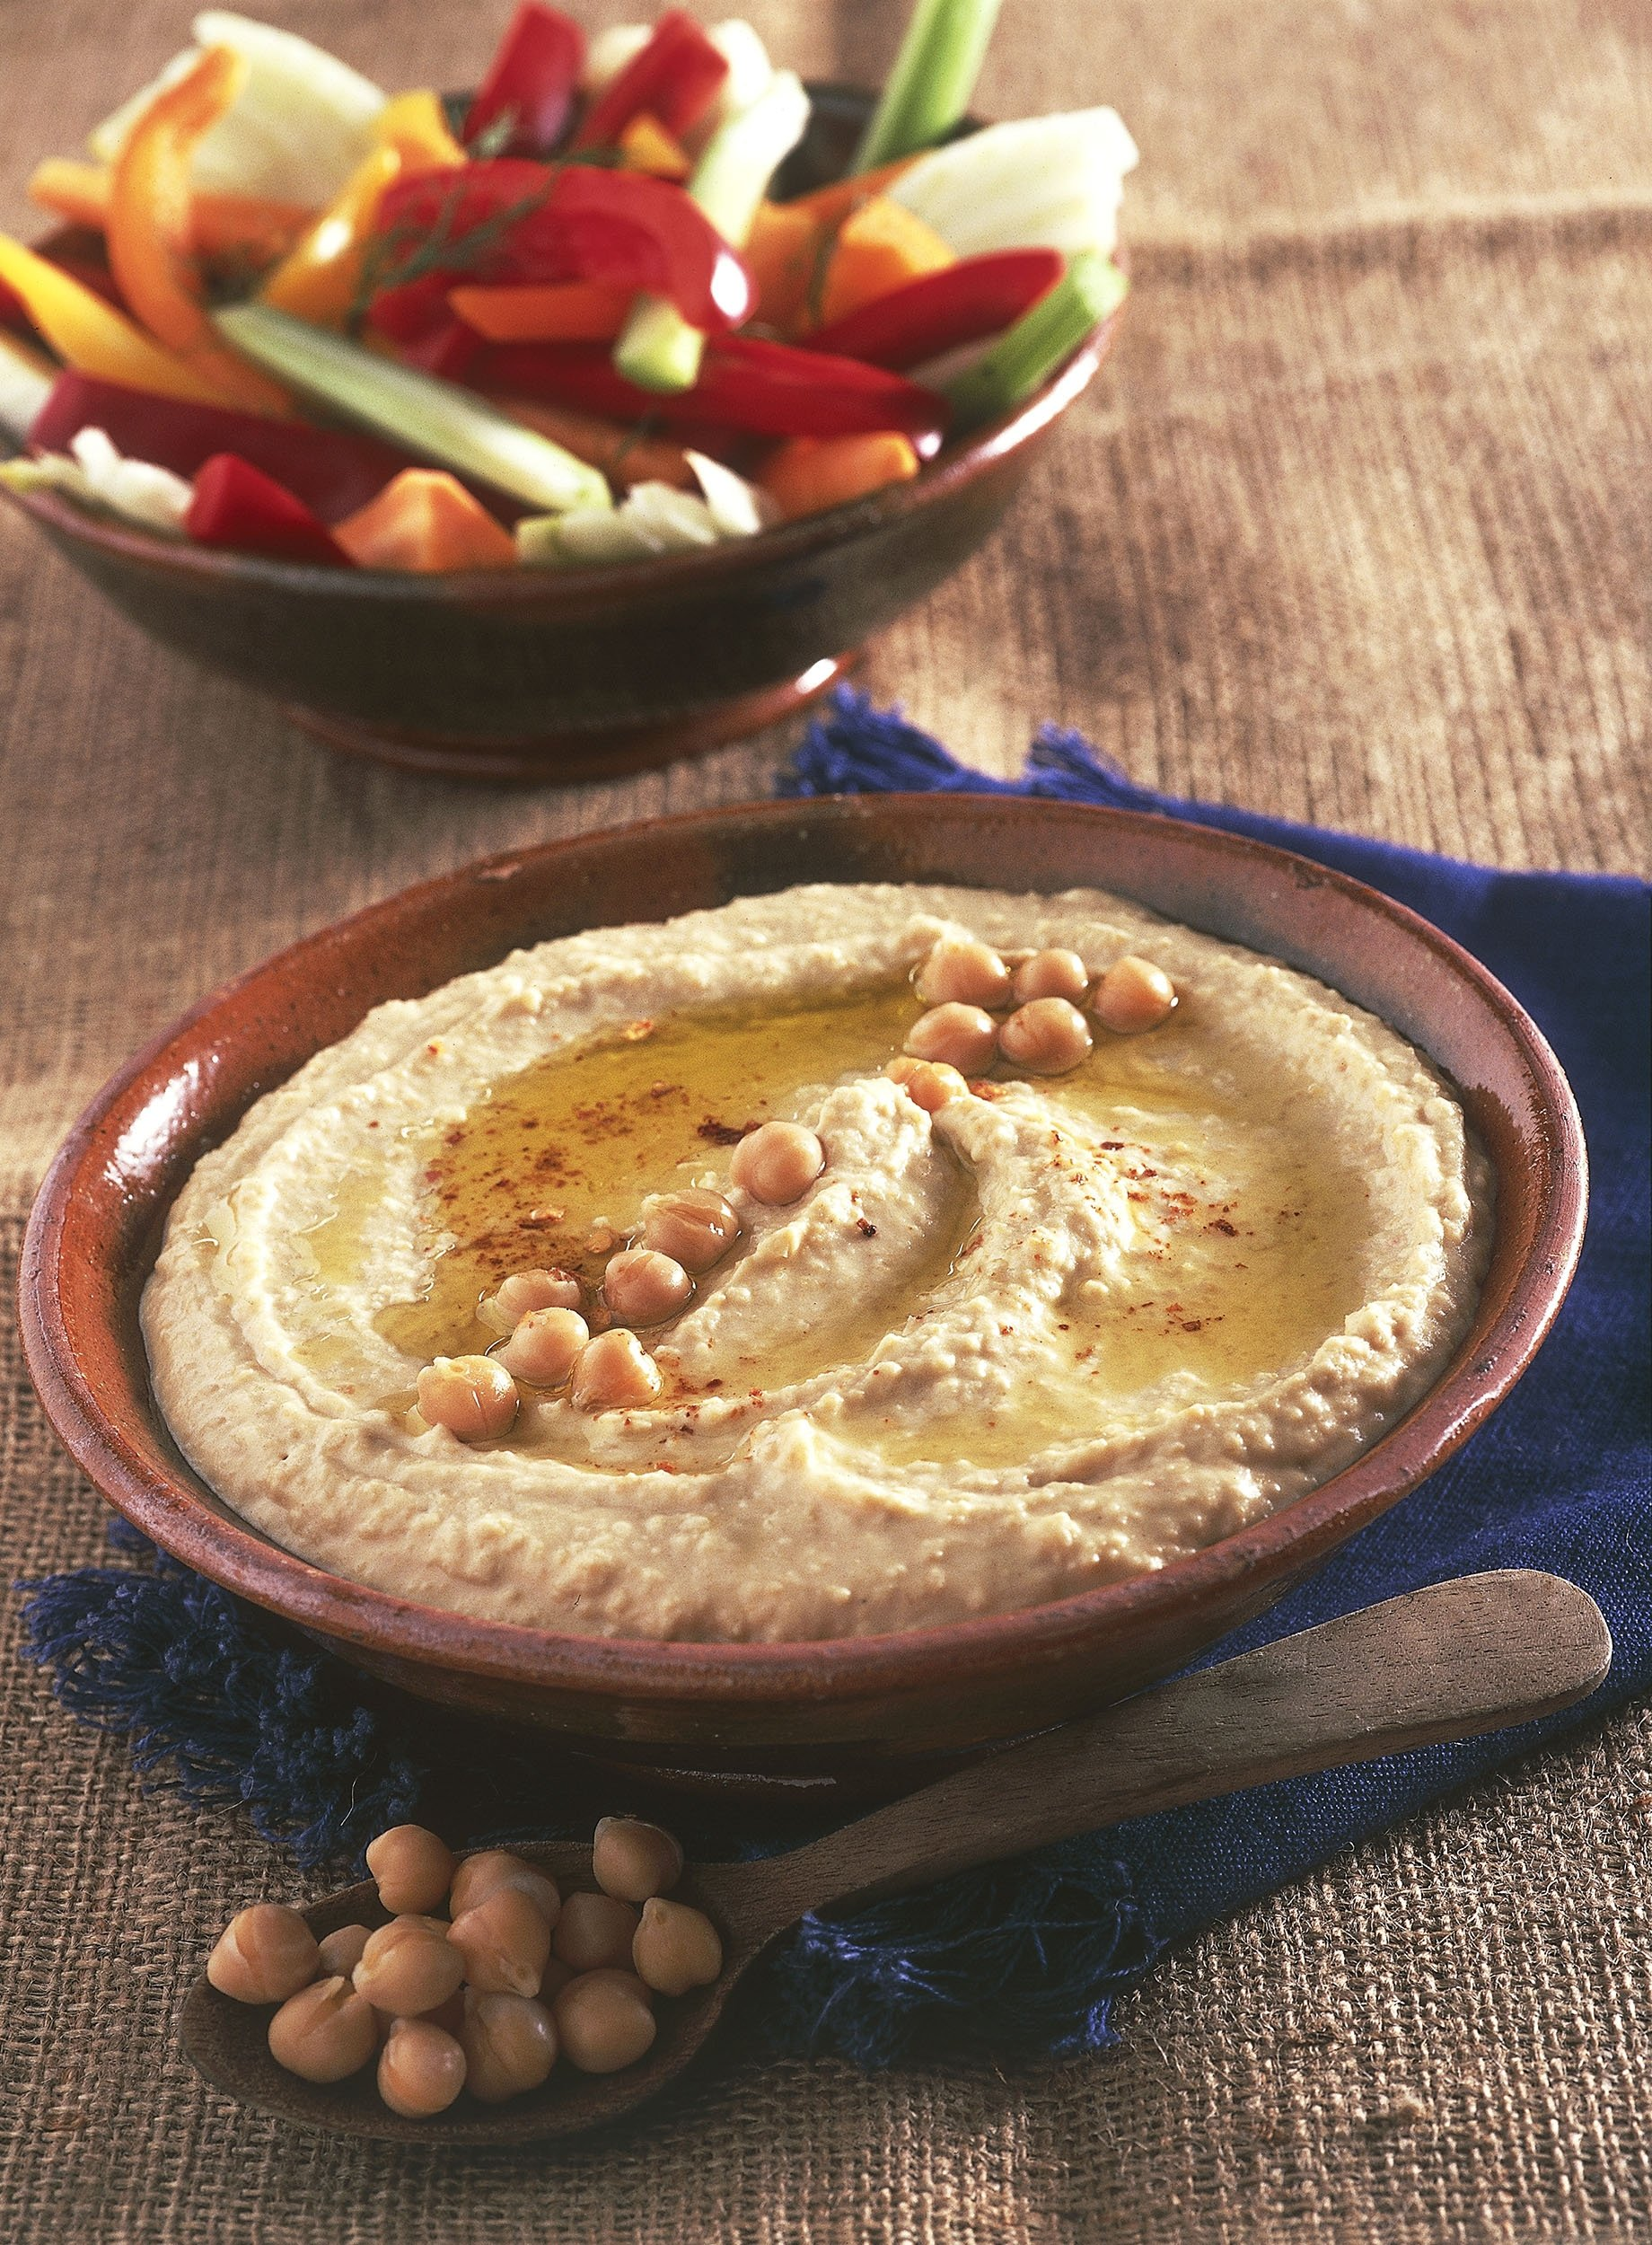 Hummus is a typical dip in Middle Eastern cuisine but is now popular workdwide. (Photo by DeAgostini/Getty Images)